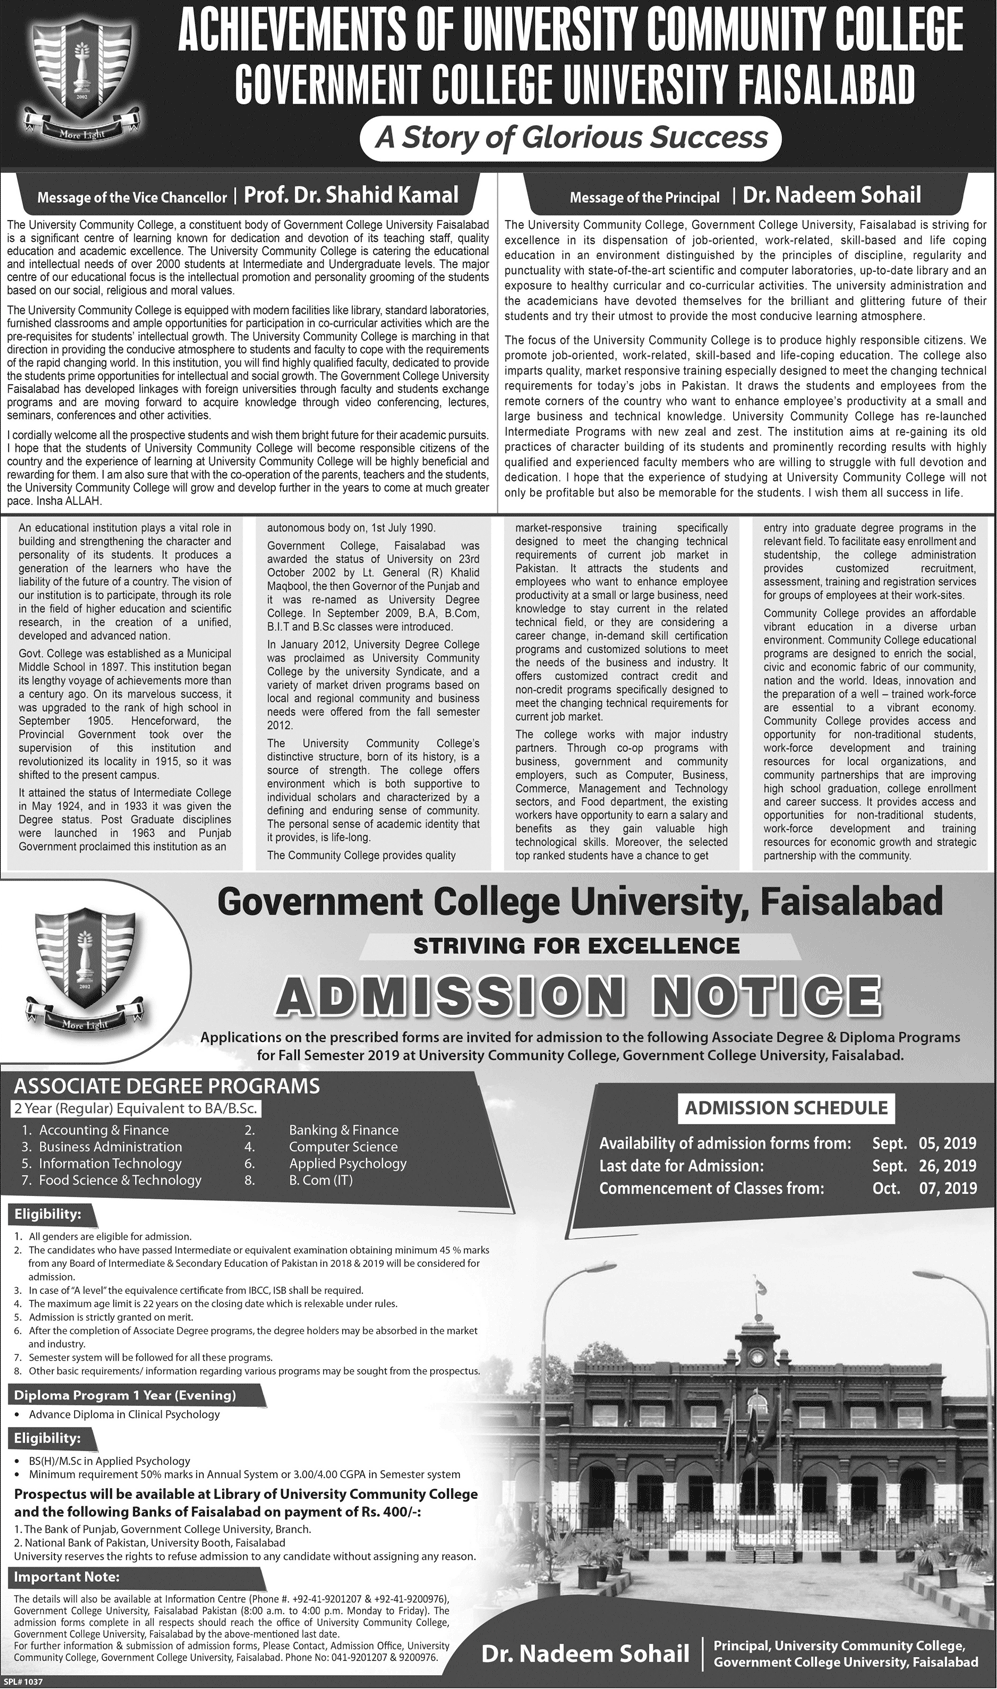 GCU Faisalabad Admission 2019 in Associate Degree Programs (BA, B.Sc), Merit List